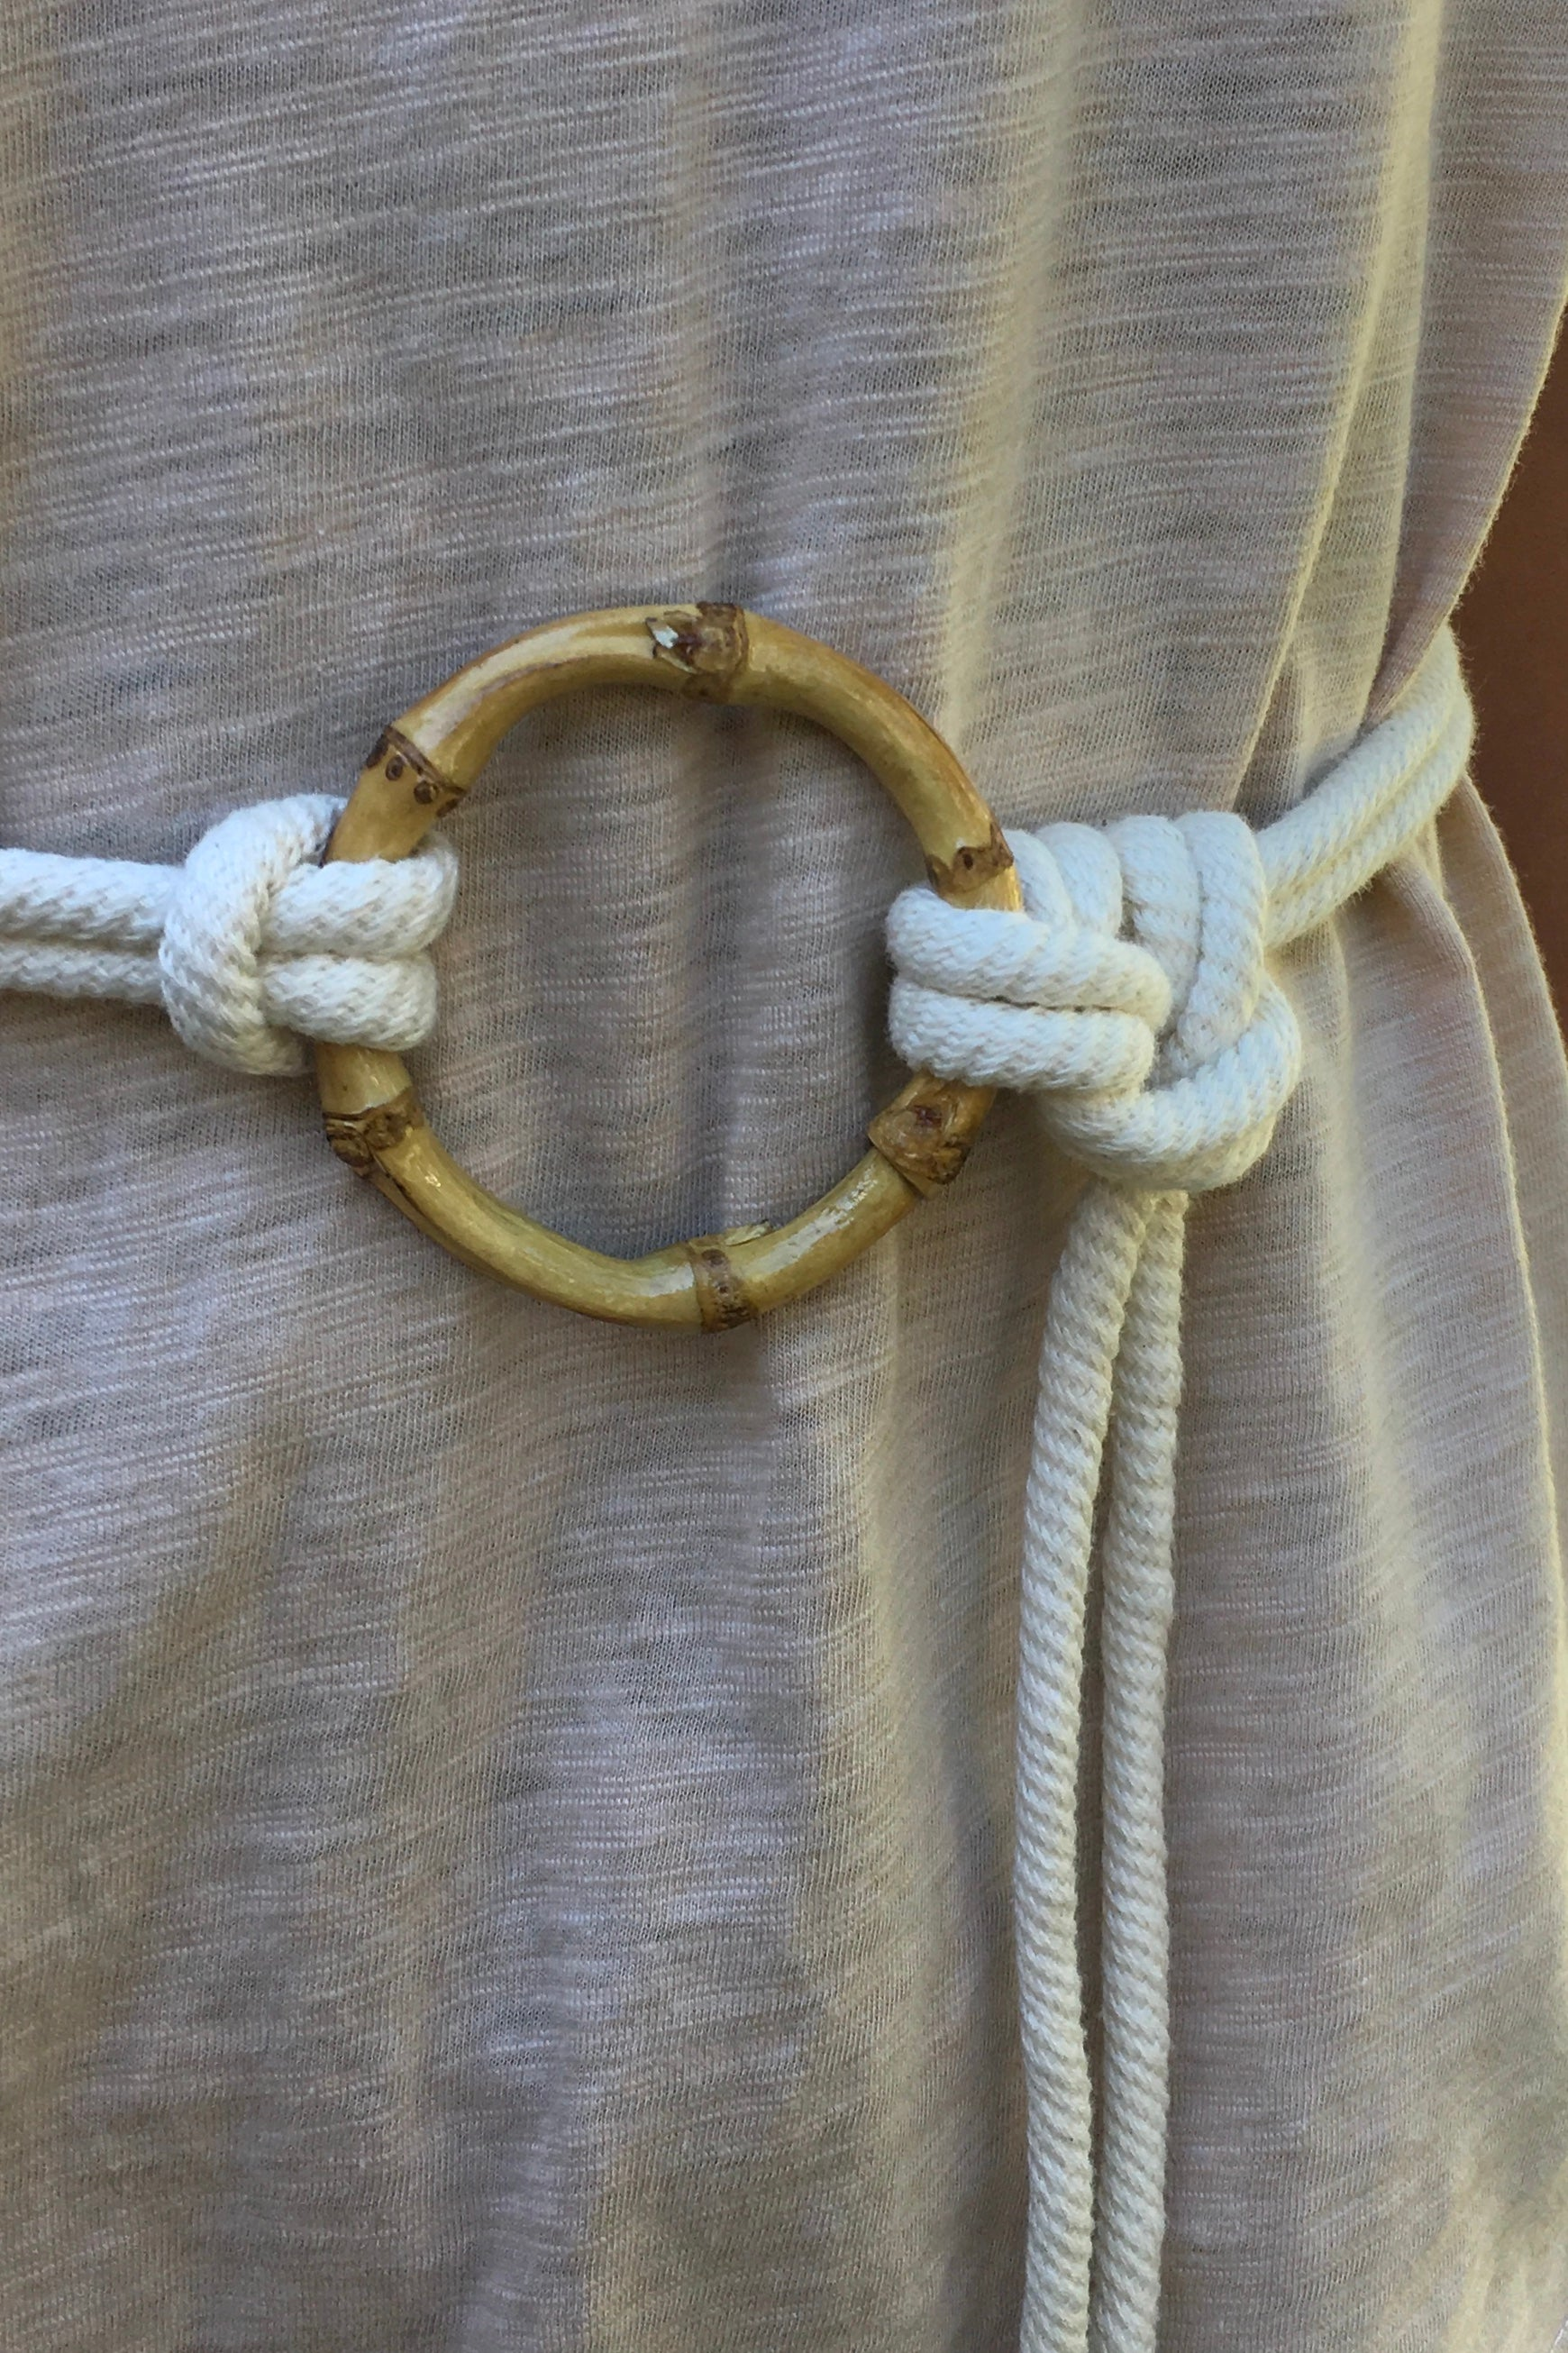 A luxurious rope tie belt with a funky bamboo belt buckle